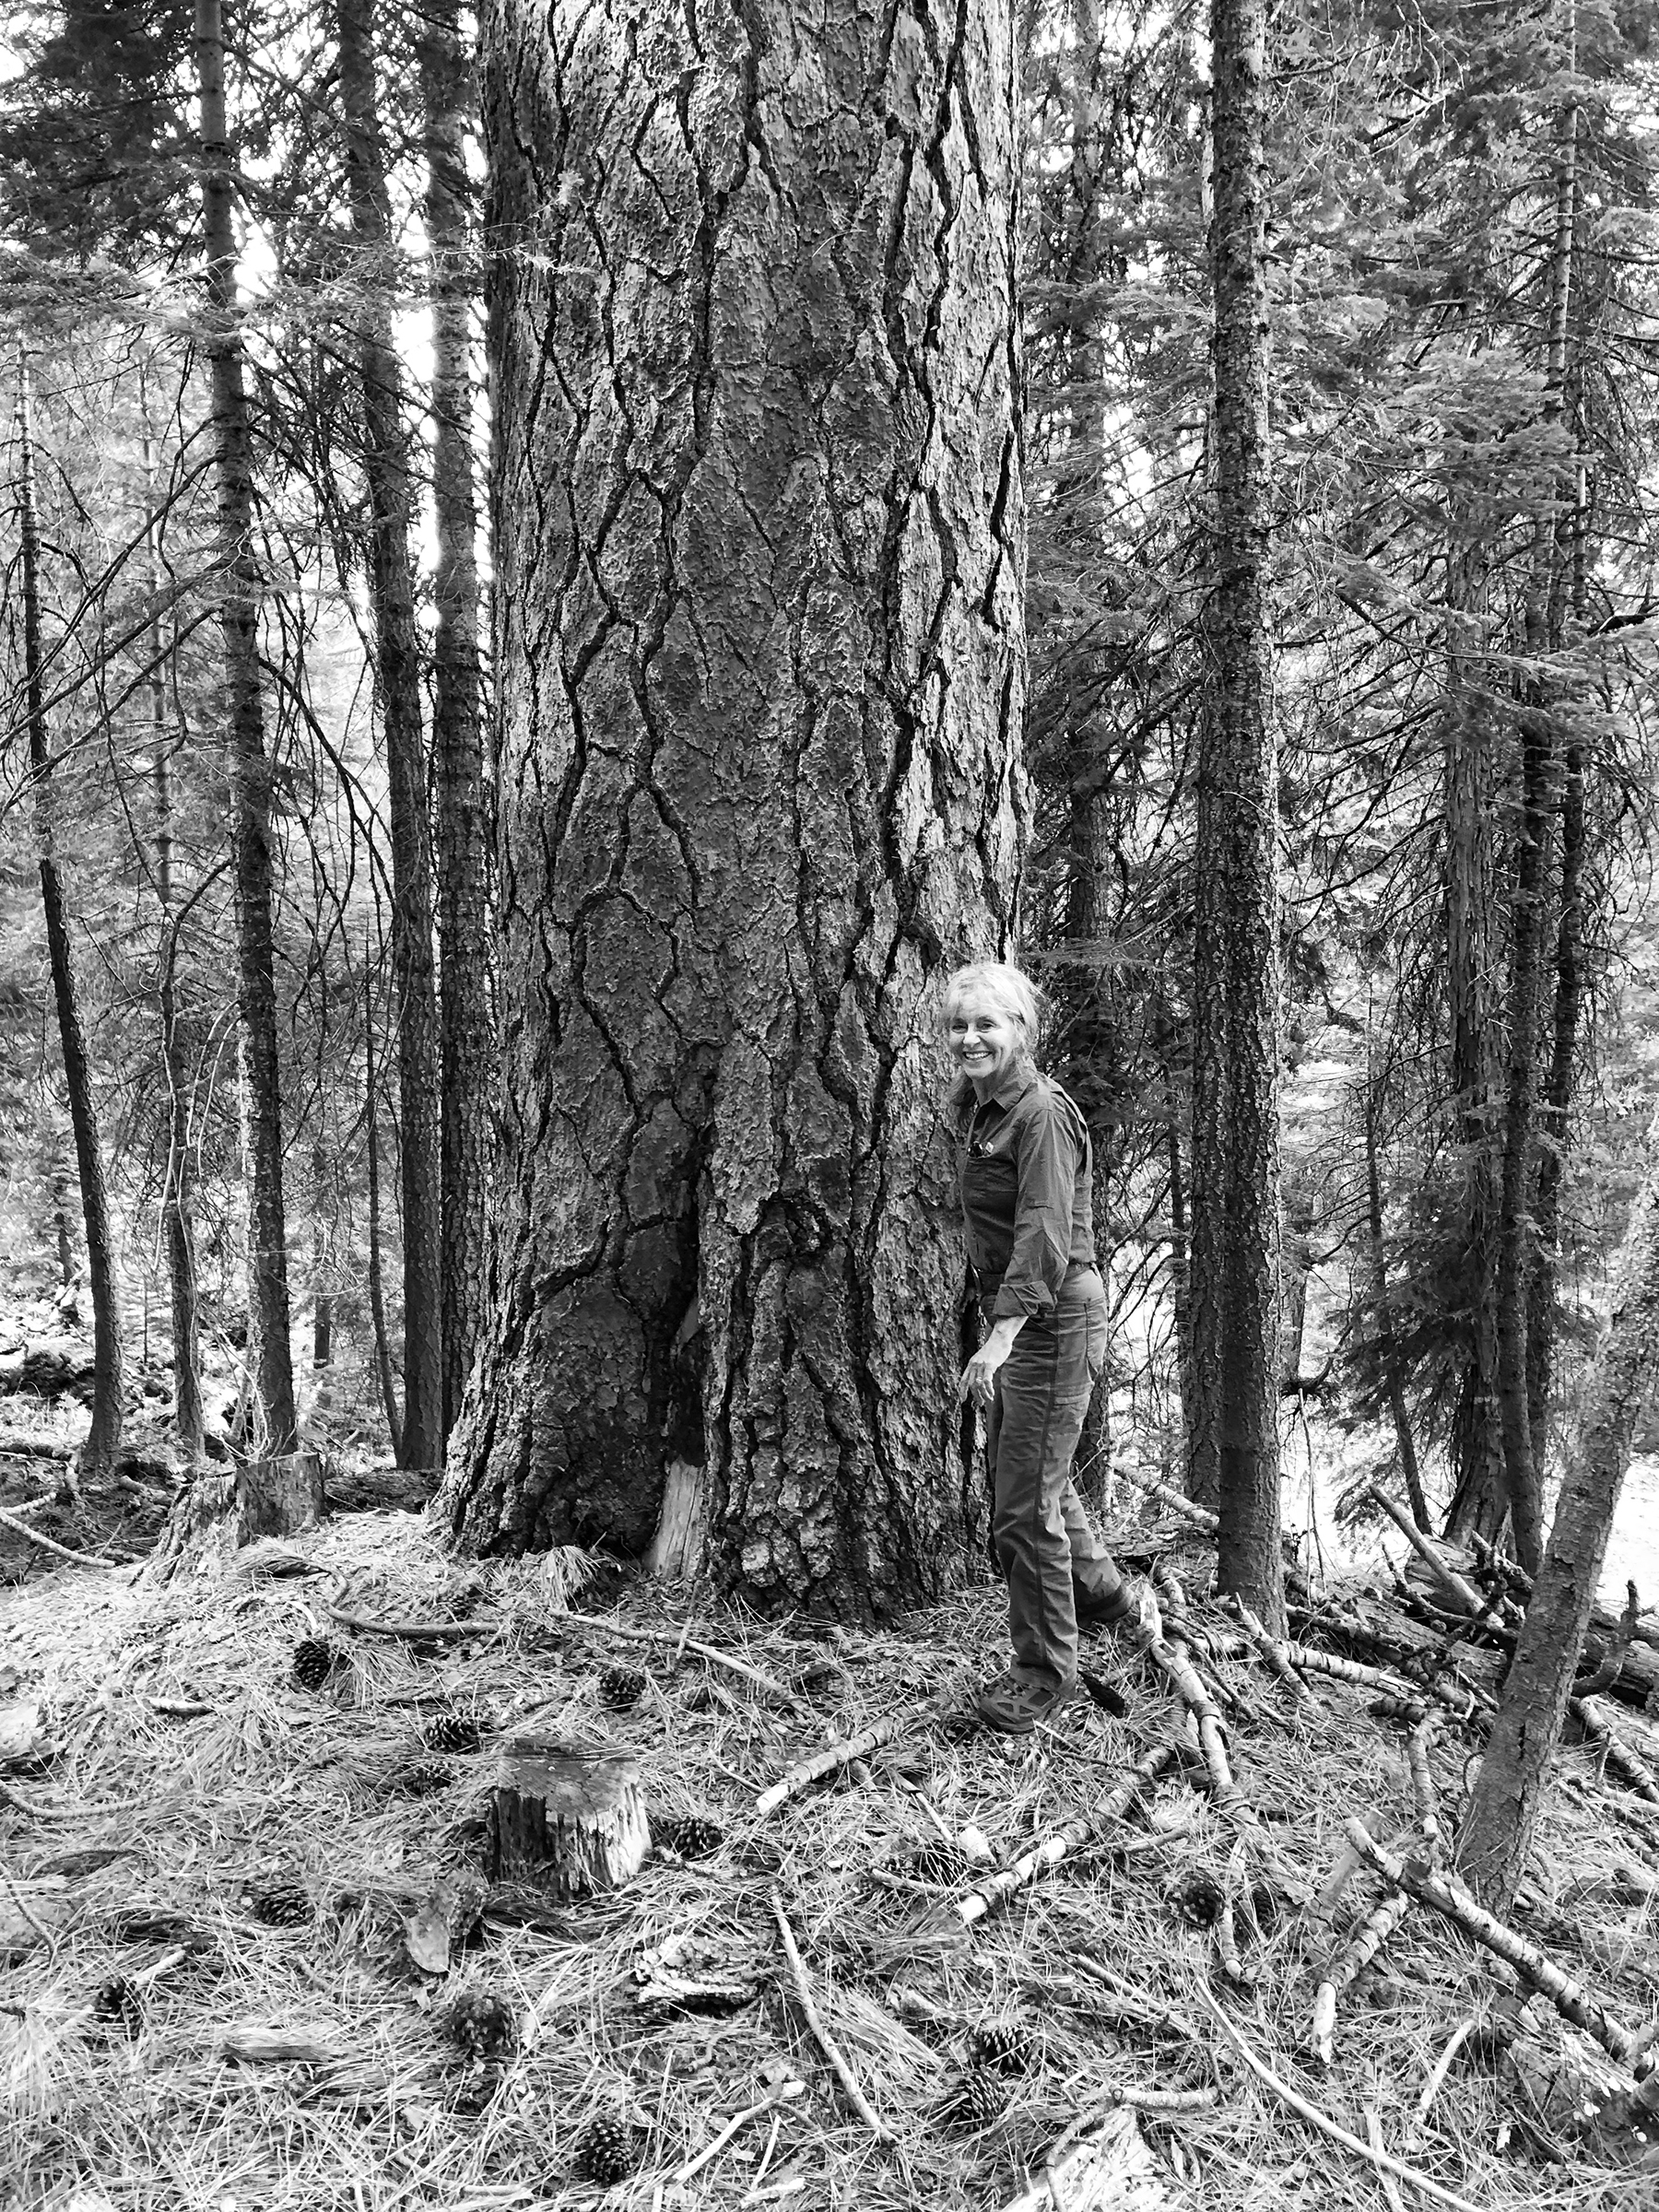 Marie Davis standing next to trees in a forest.